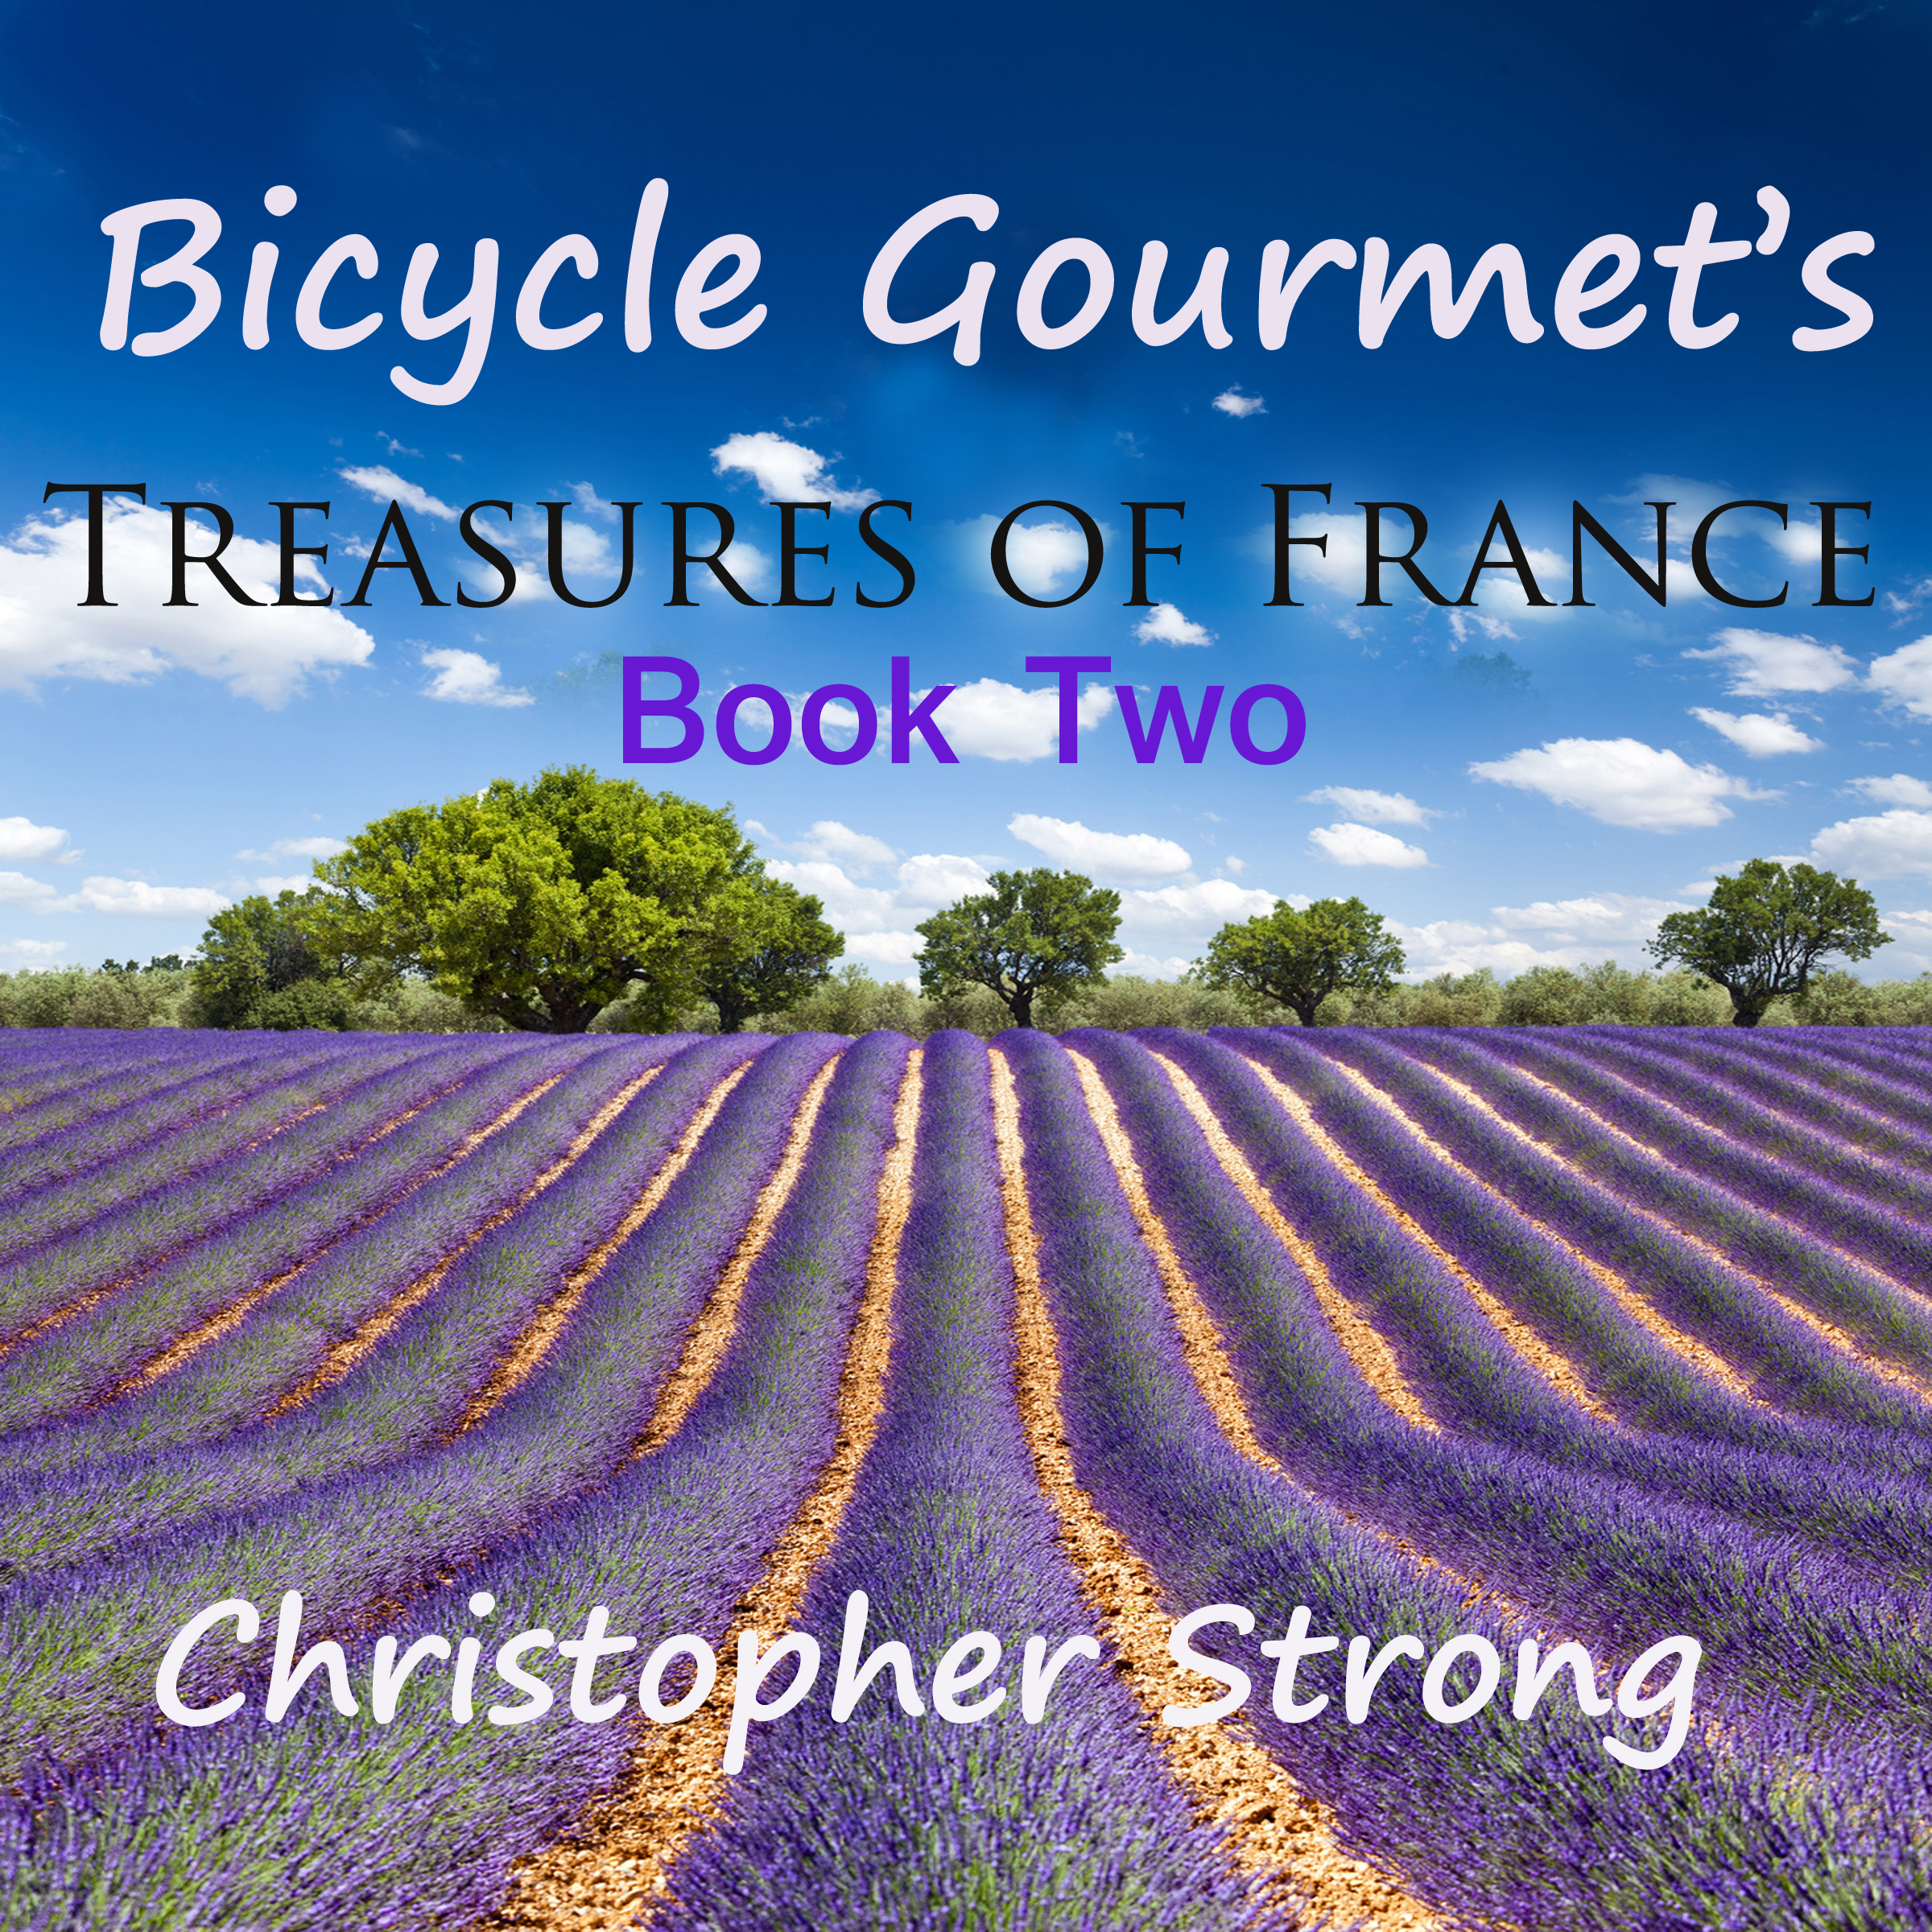 Printable Bicycle Gourmet's Treasures of France - Book Two Audiobook Cover Art